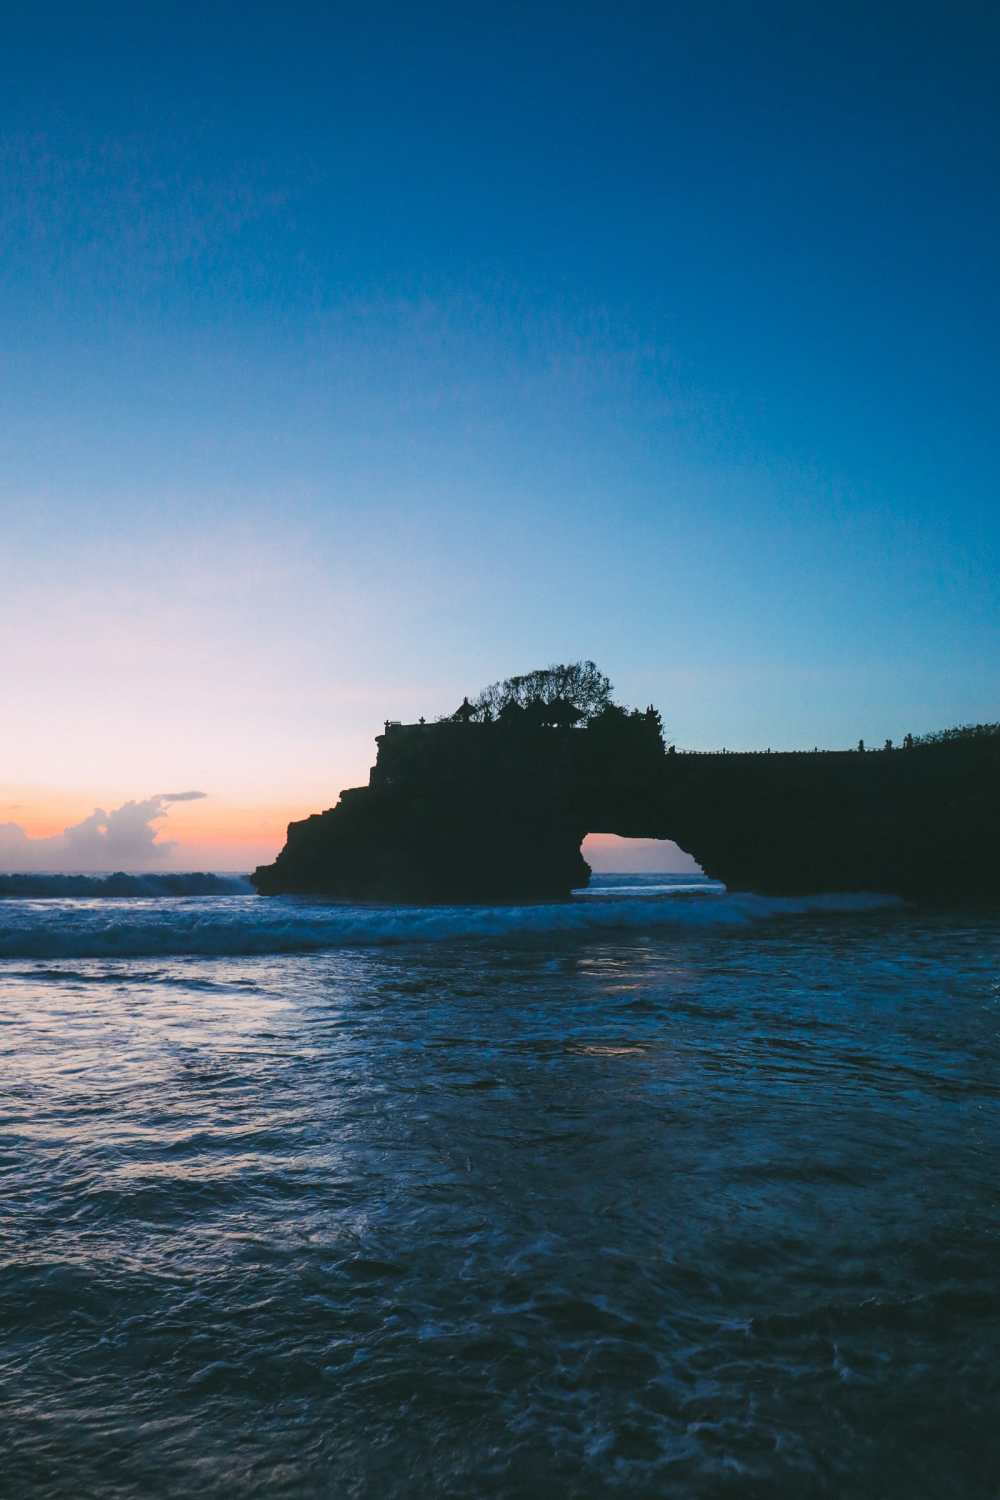 Bali Travel Diary - Ubud Palace, Uluwatu and Tanah Lot (44)